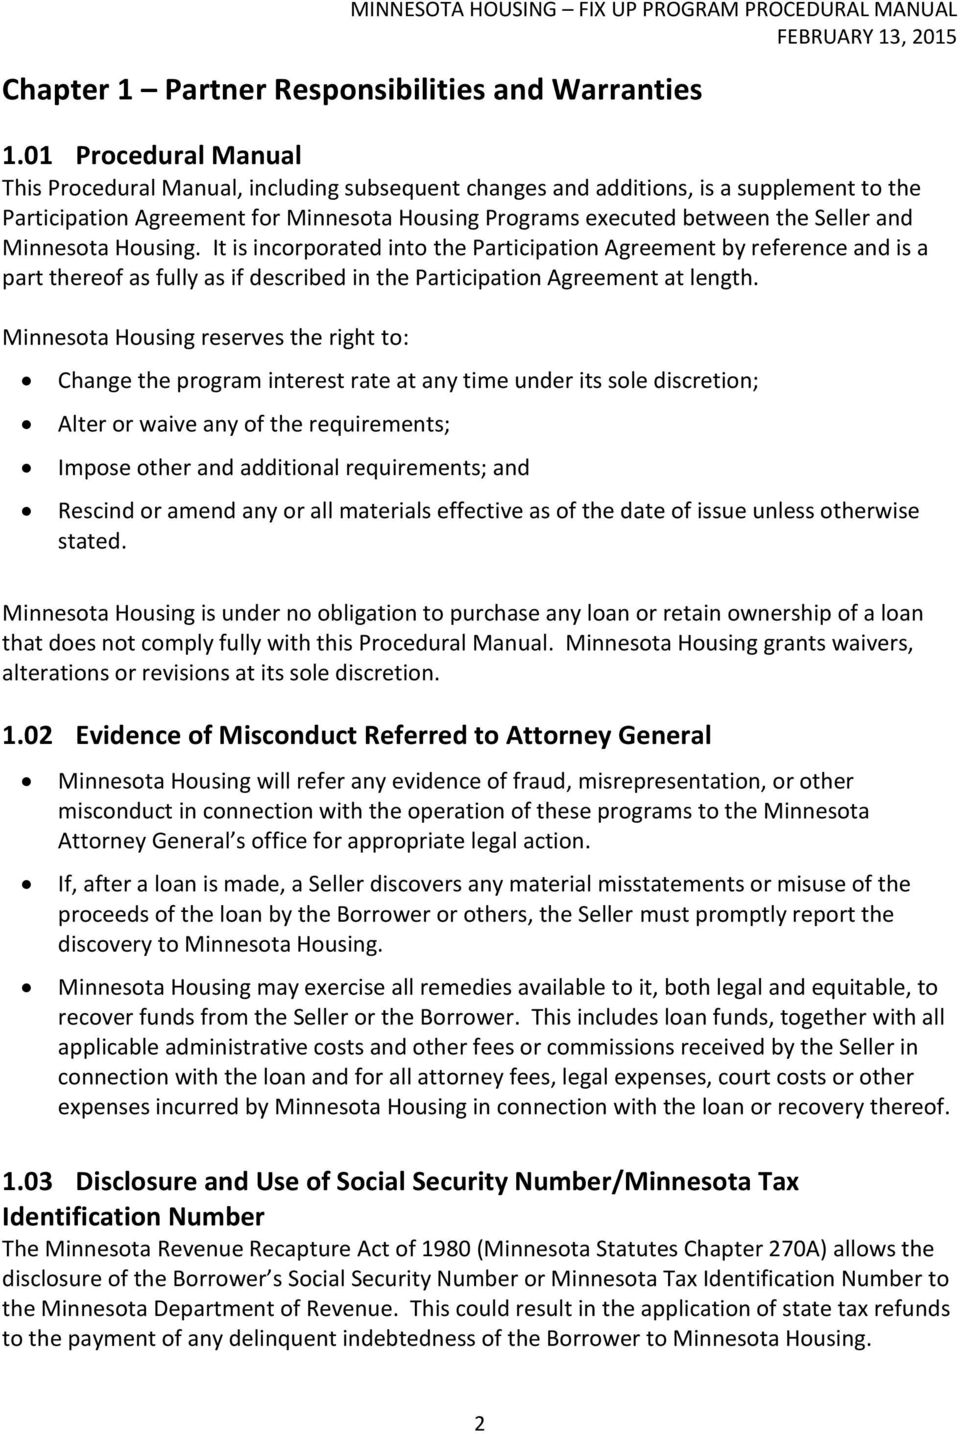 Minnesota Housing. It is incorporated into the Participation Agreement by reference and is a part thereof as fully as if described in the Participation Agreement at length.